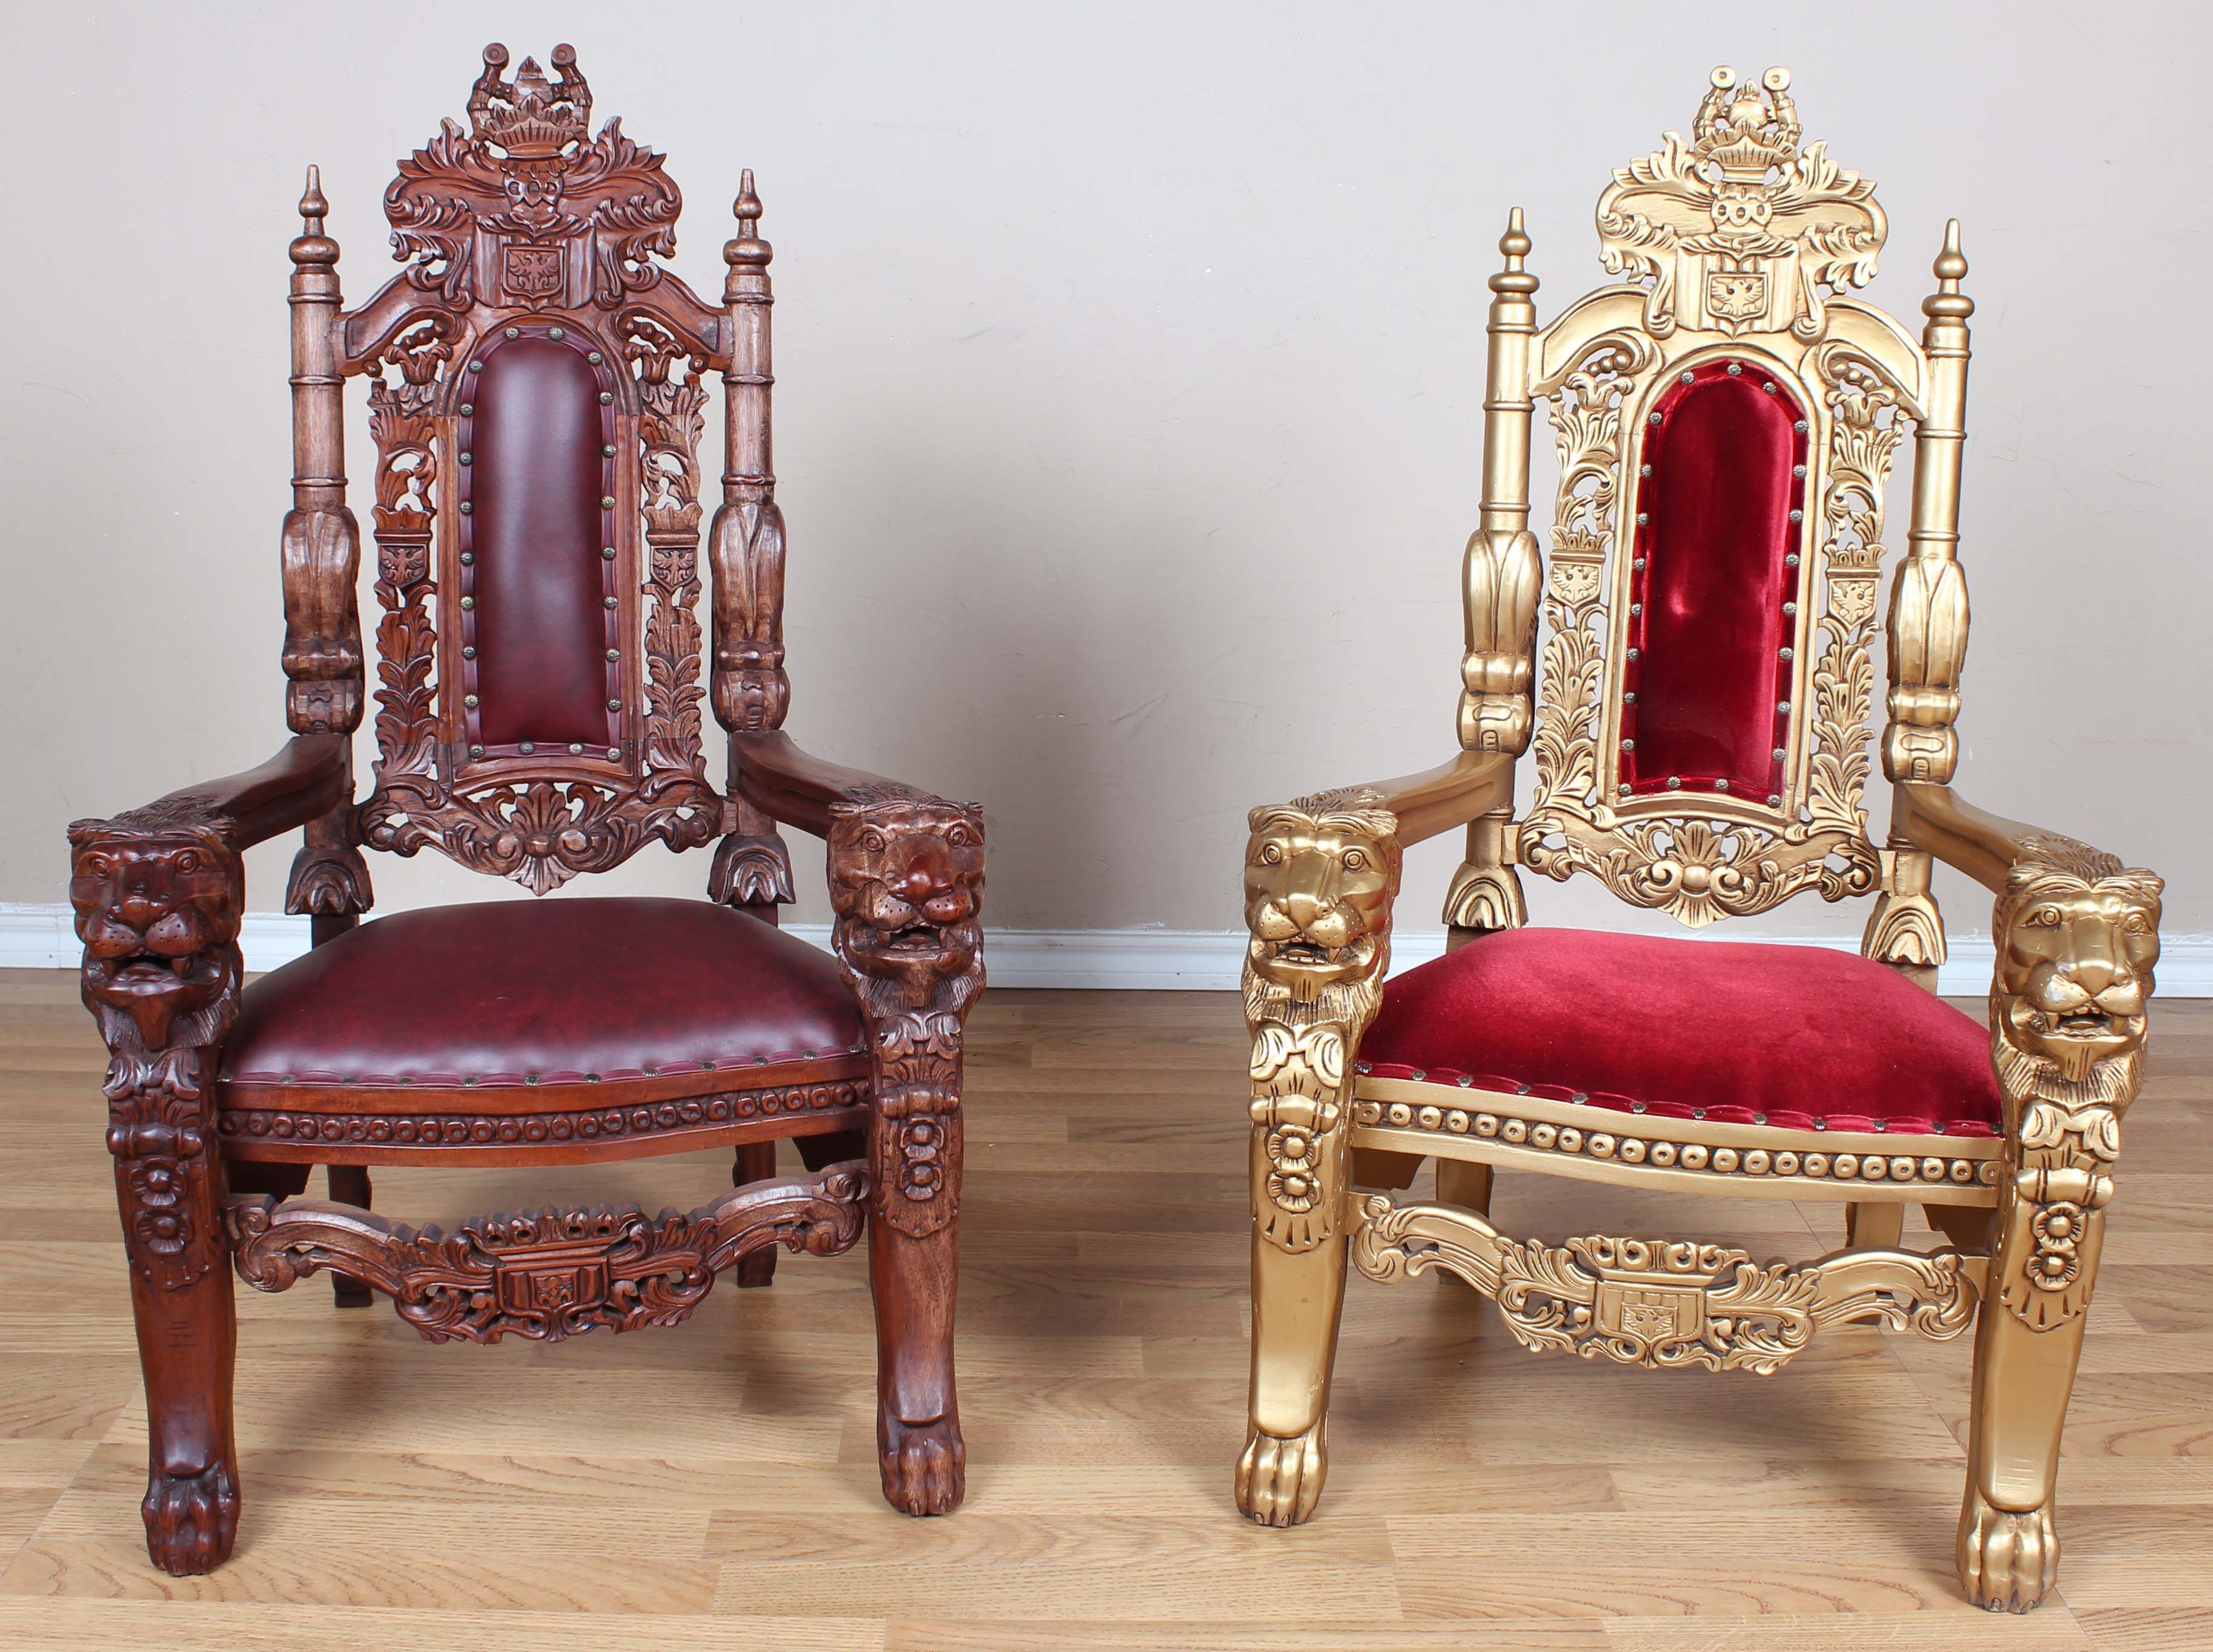 3 MINI Throne Chairs for children or dolls